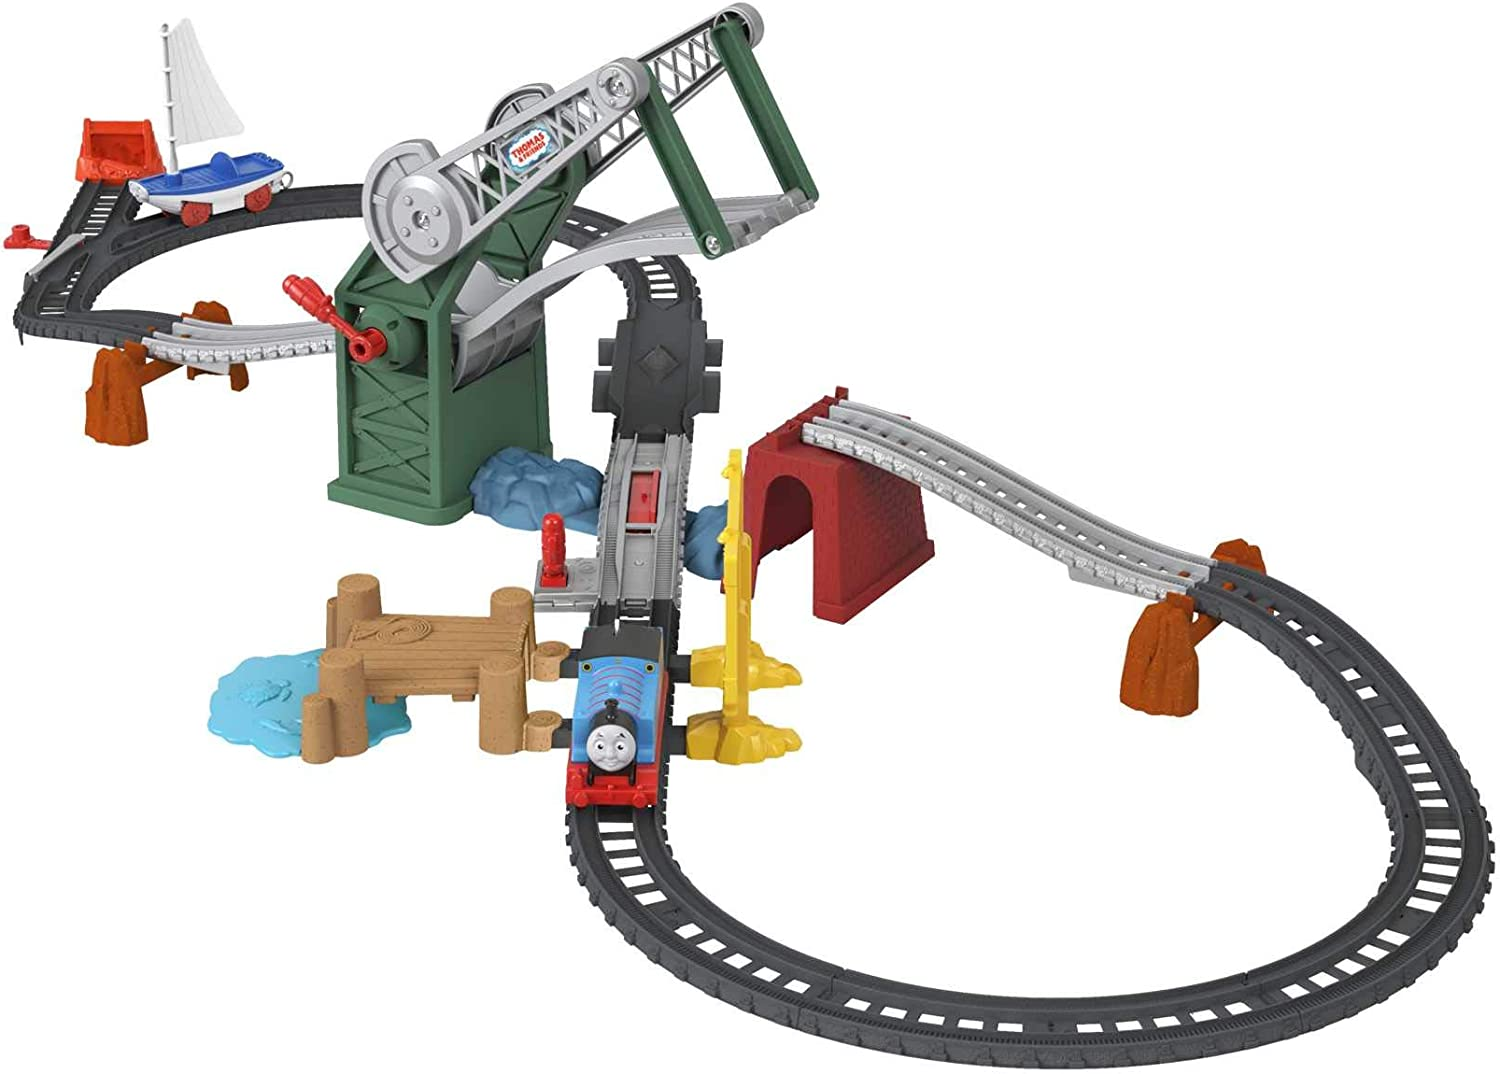 Thomas & Friends Trackmaster, Bridge Lift Thomas & Skiff Train Set with Motorized Engine and Toy Boat for Preschool Kids Ages 3 Years and up